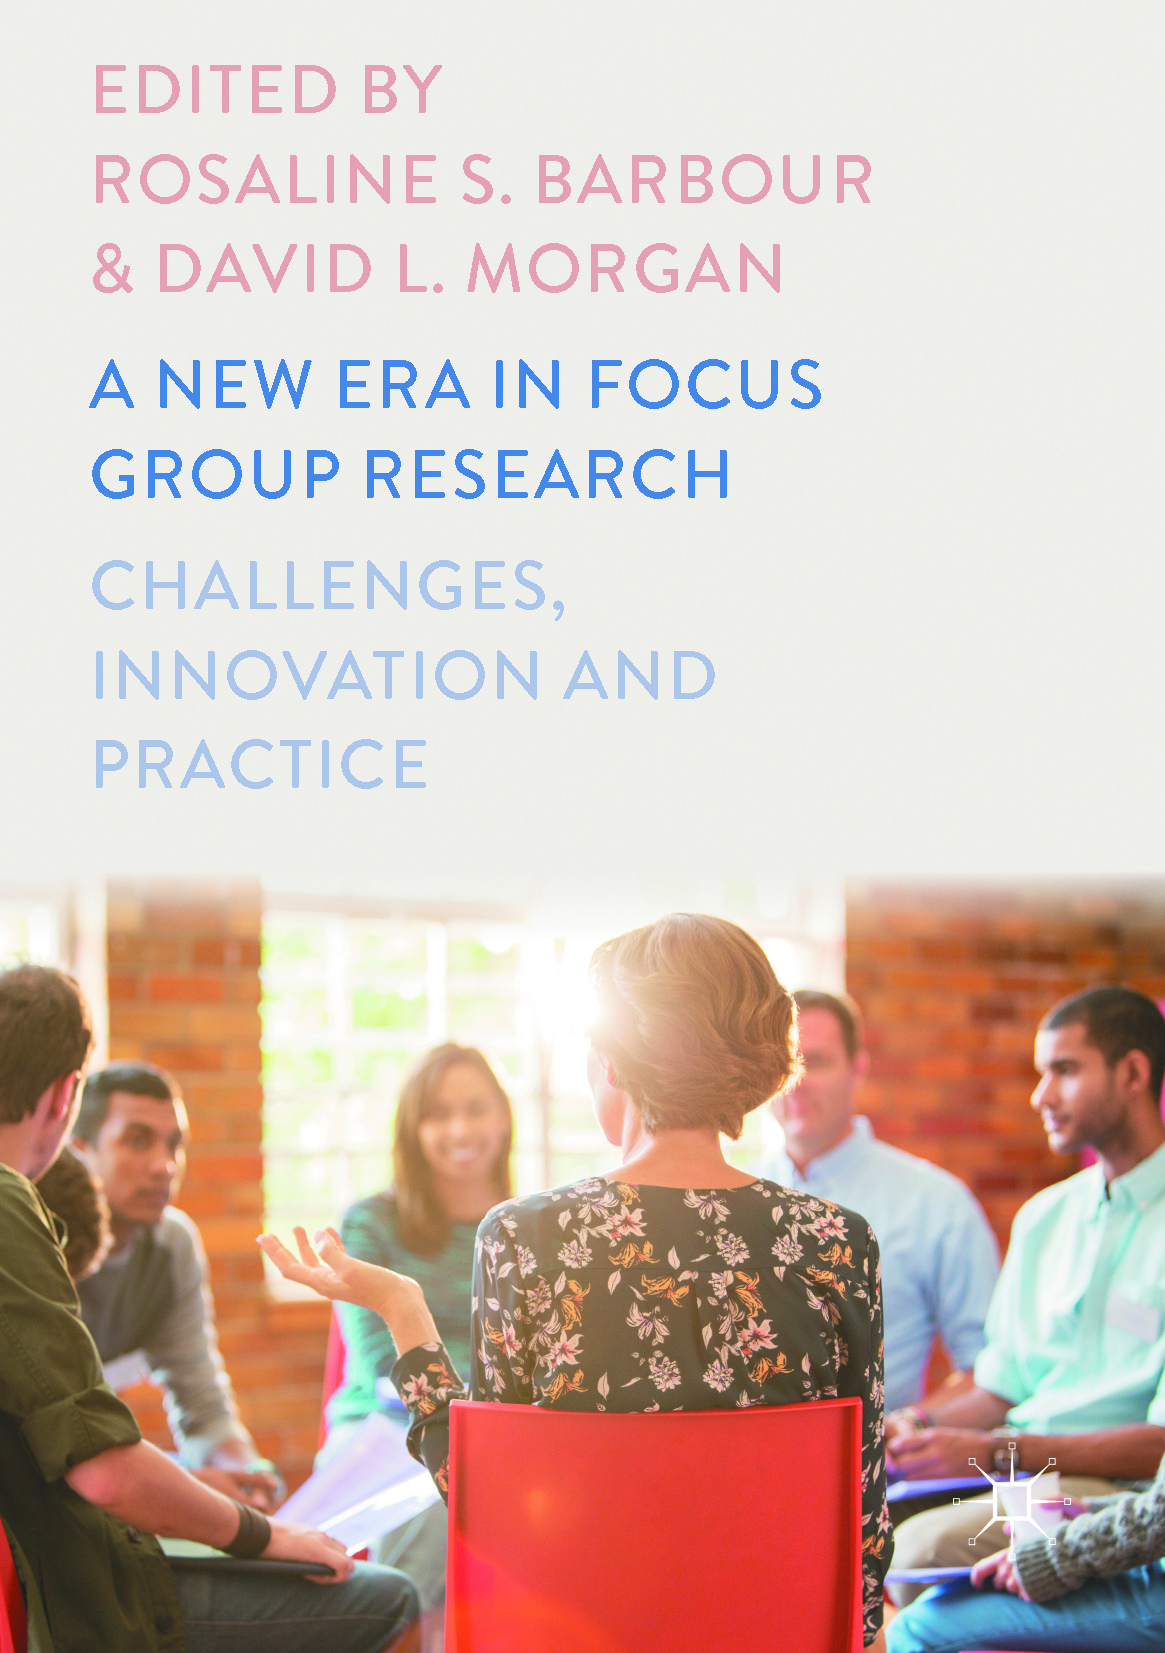 Barbour, Rosaline S. - A New Era in Focus Group Research, ebook